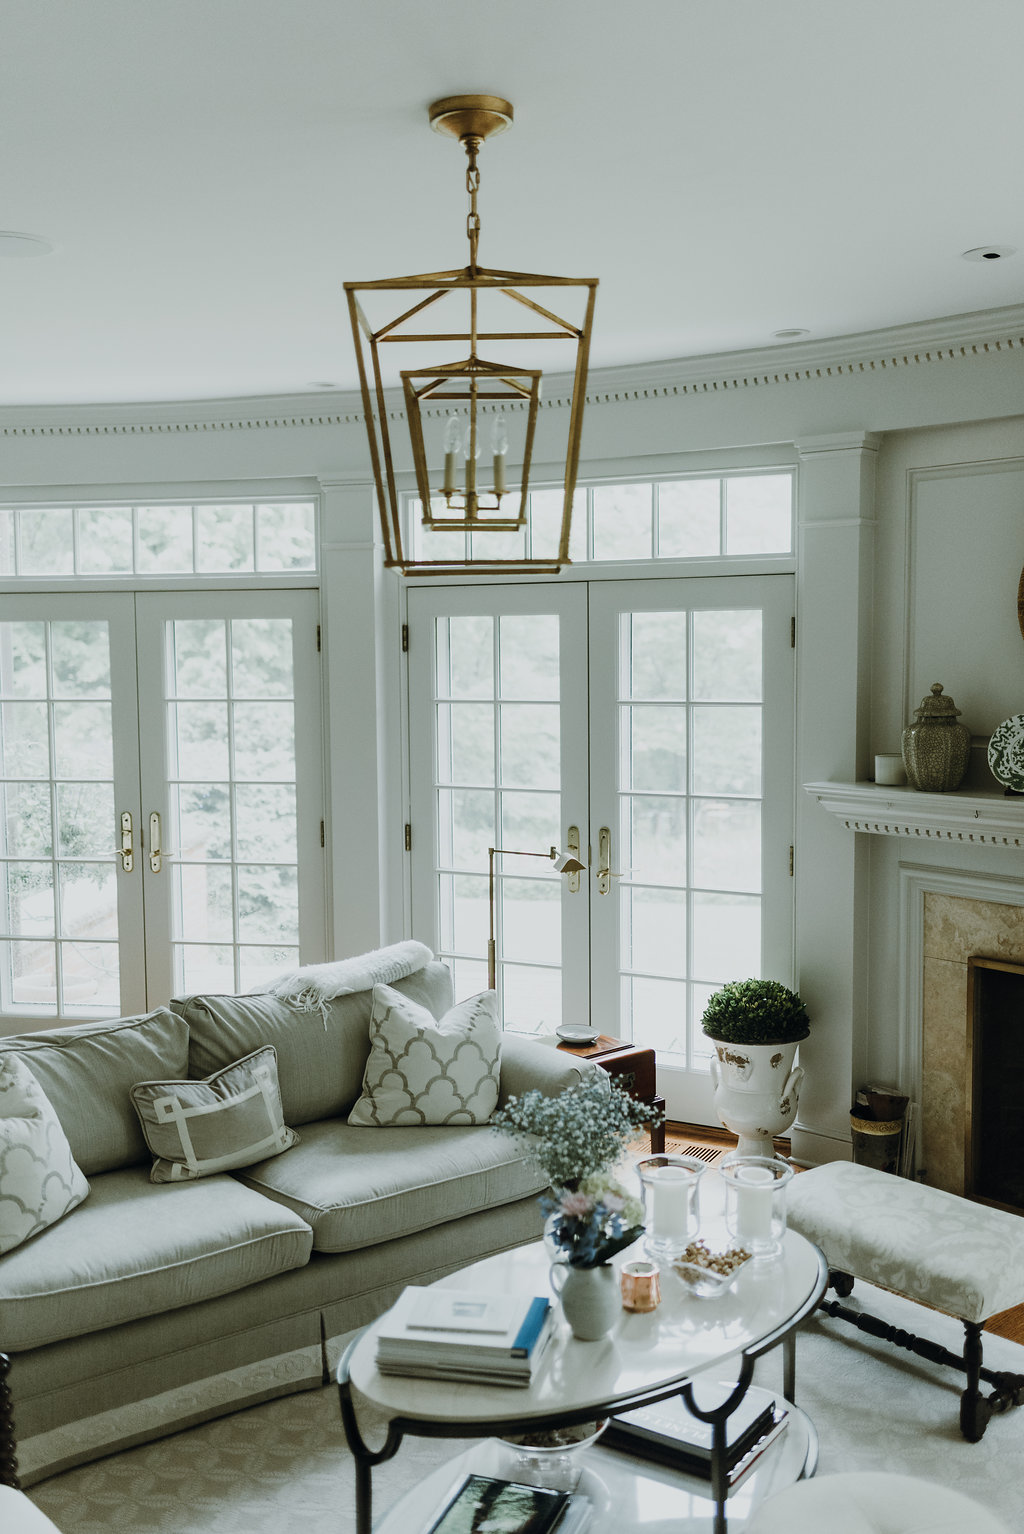 plymouth residence - plymouth poise a Pepper Pike colonial home is reimagined to achieve polish and poise. What began as a modest furnishings update to a daughter's bedroom, soon budded into a three-year evolution.